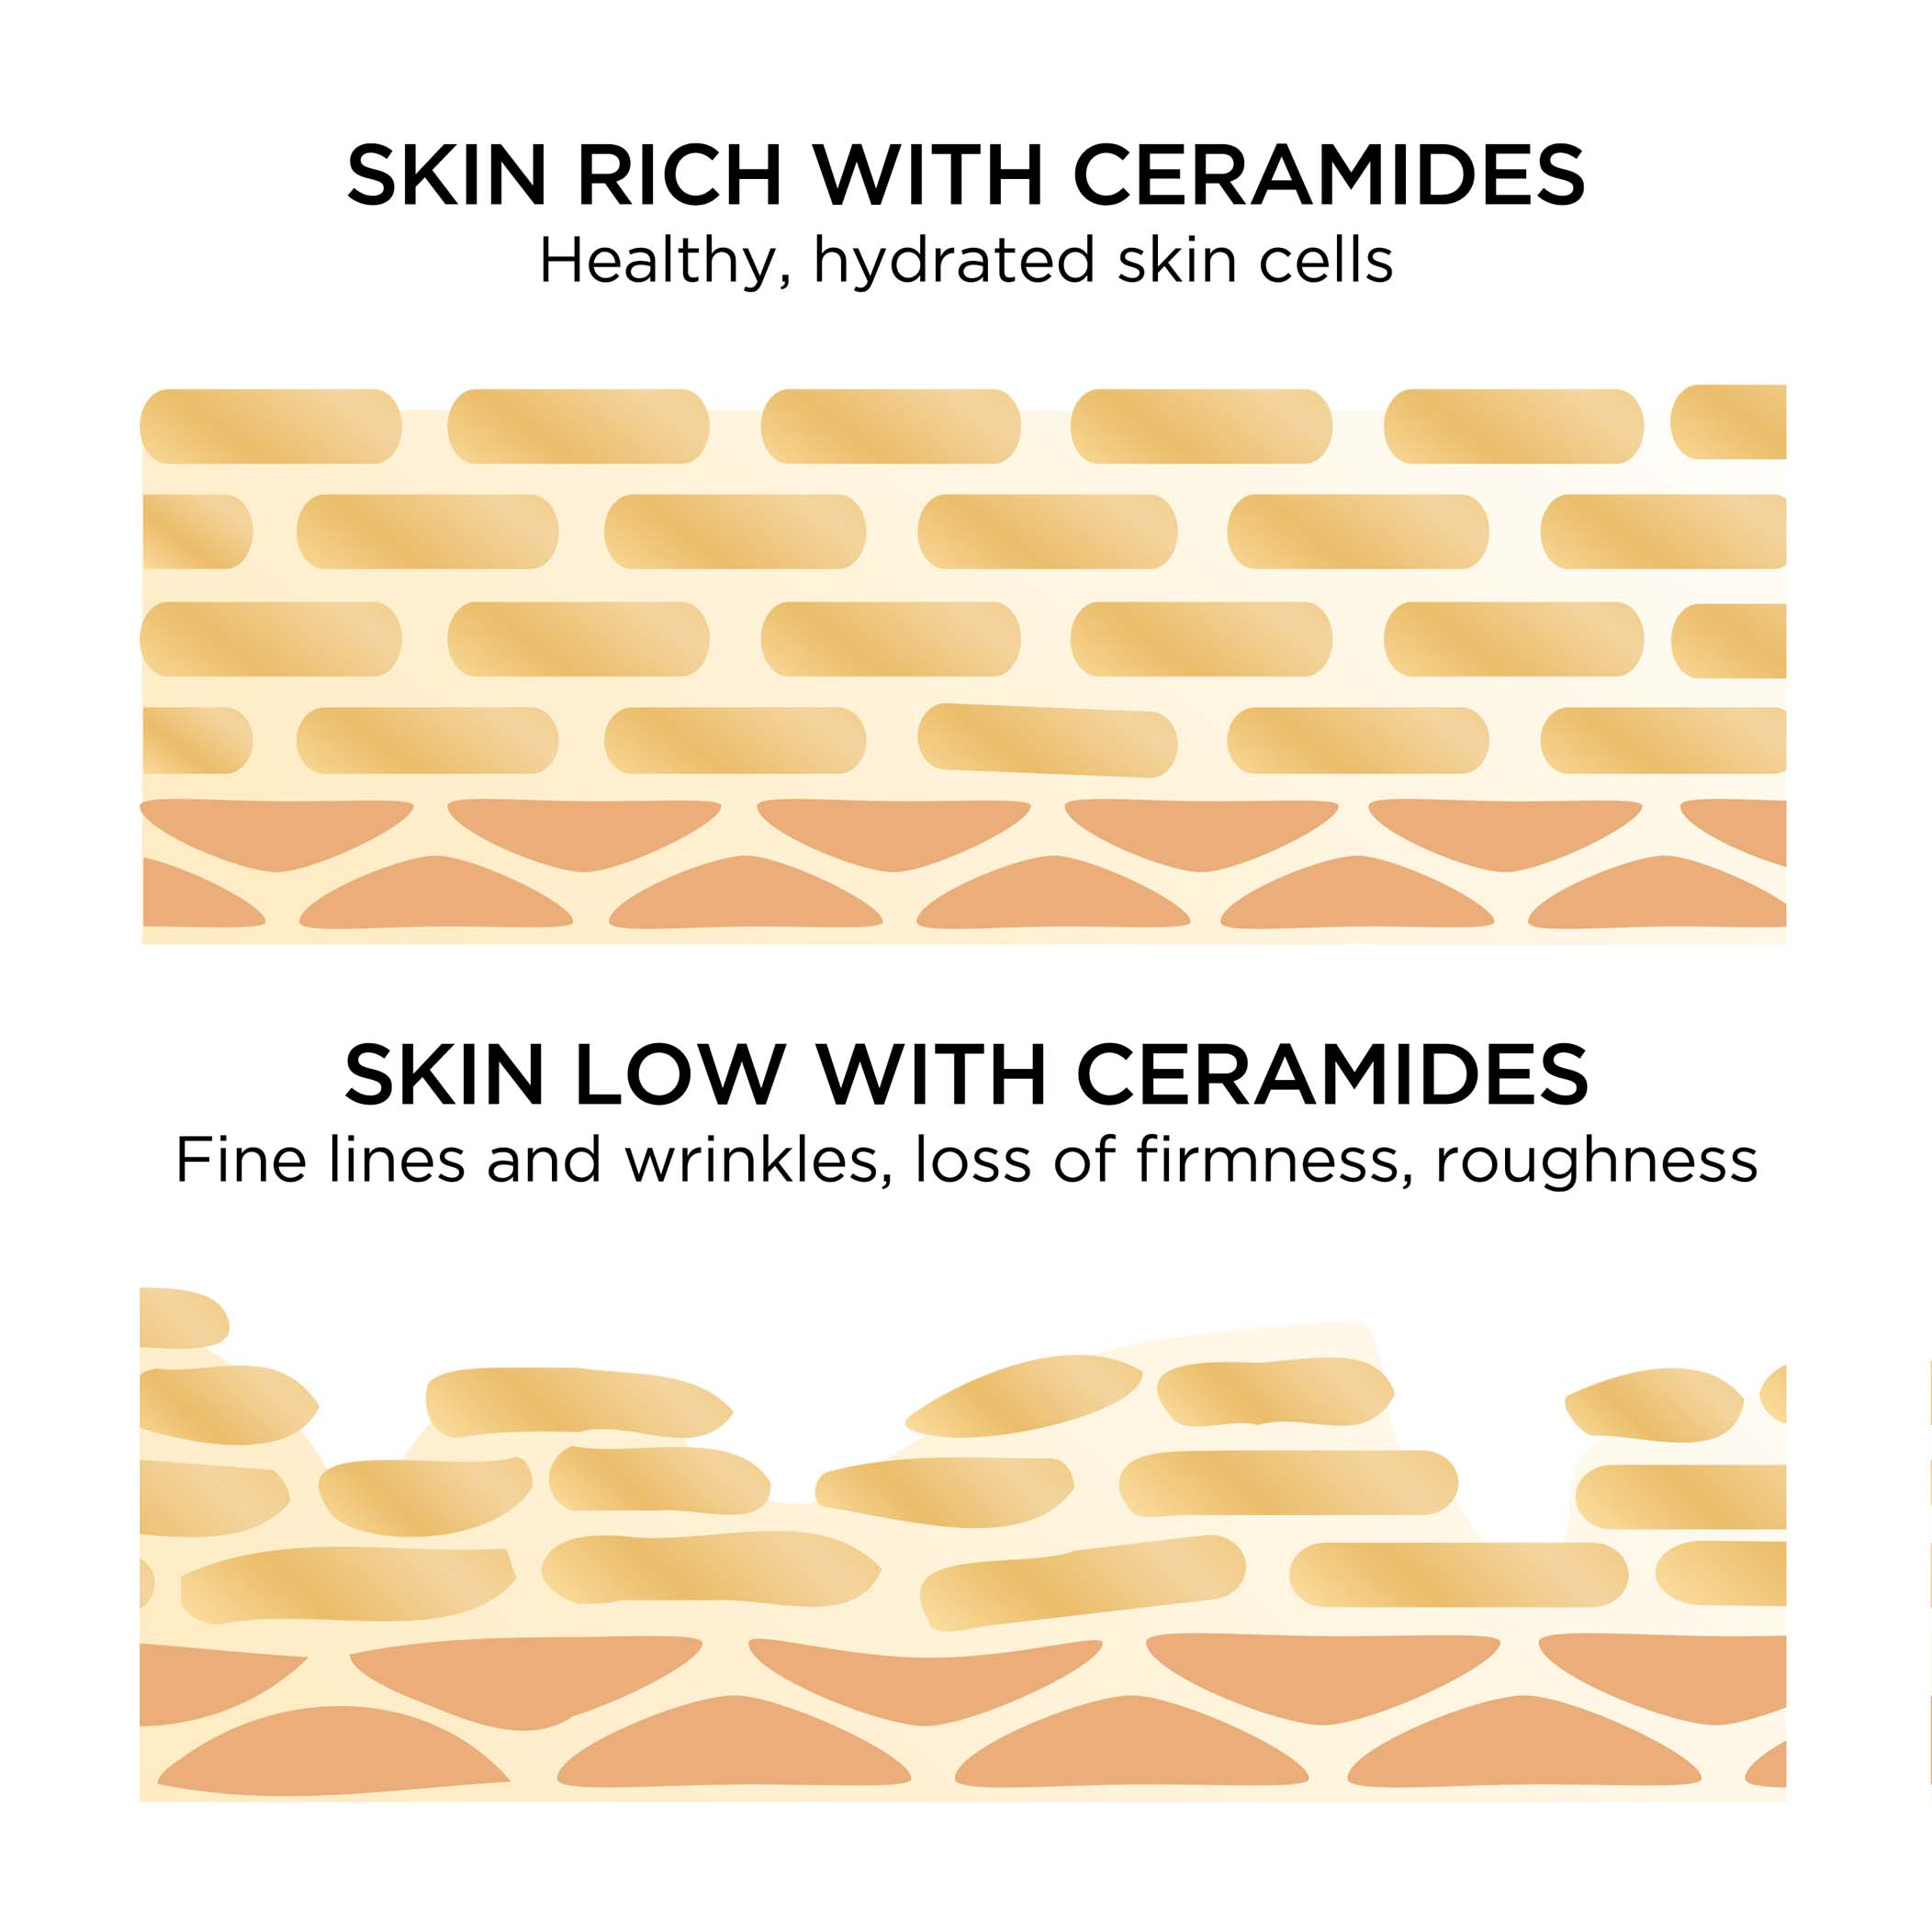 Skin rich with ceramides are healthy, hydrated skin cells vs skin low with ceramides have fine lines and wrinkles, loss of firmness and roughness